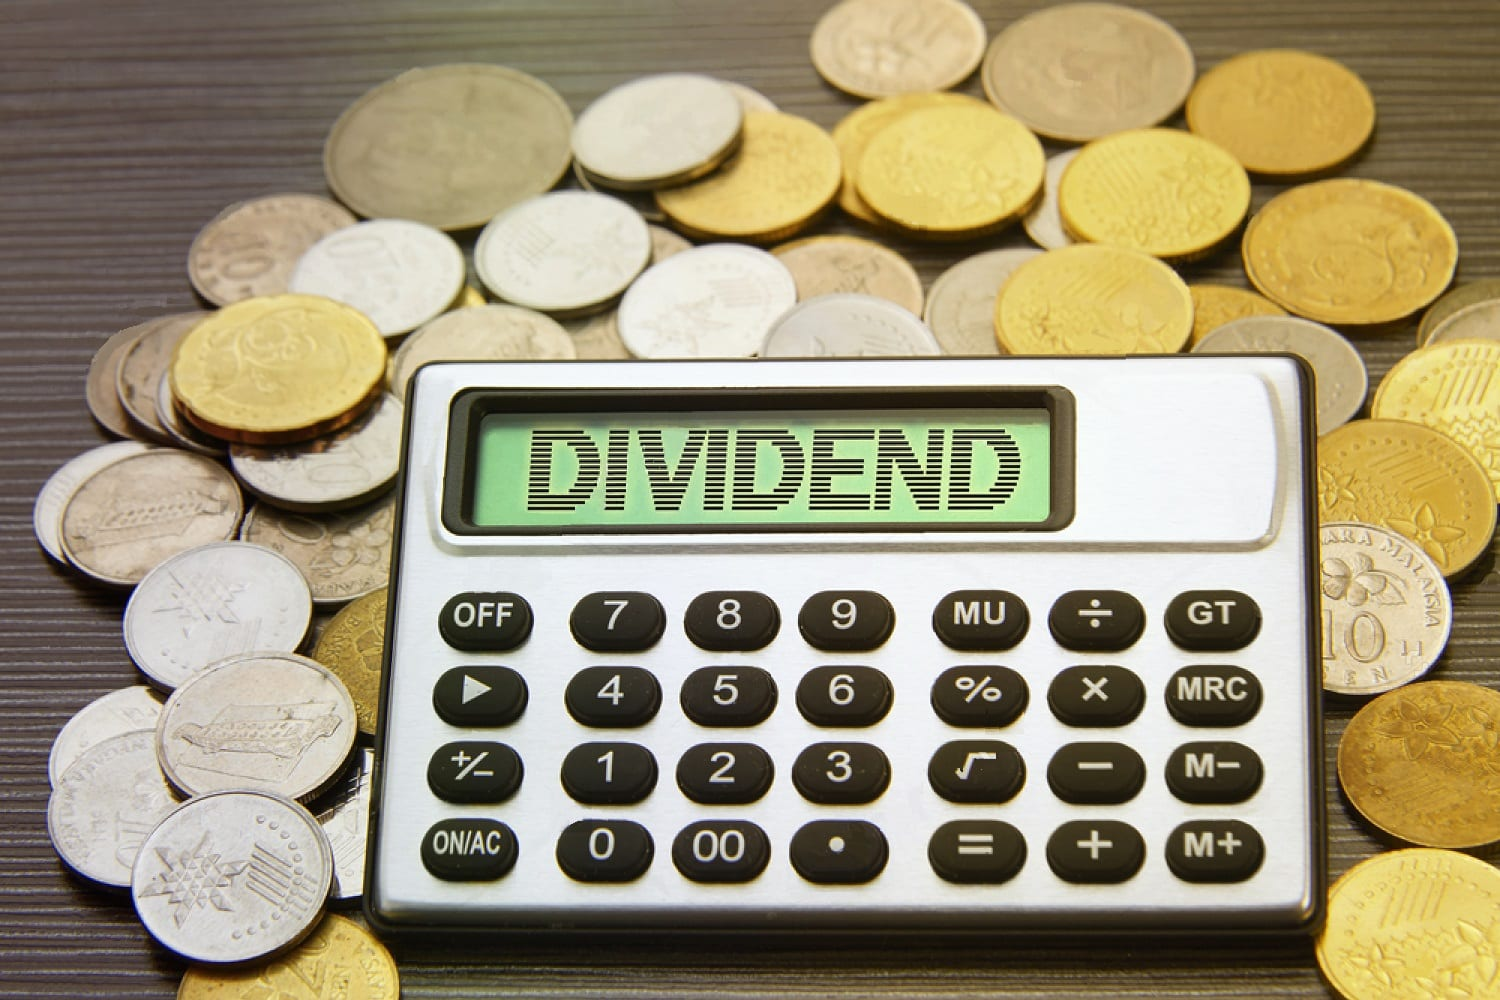 stock-photo-coins-and-silver-calculator-with-text-on-display-dividends-593619083